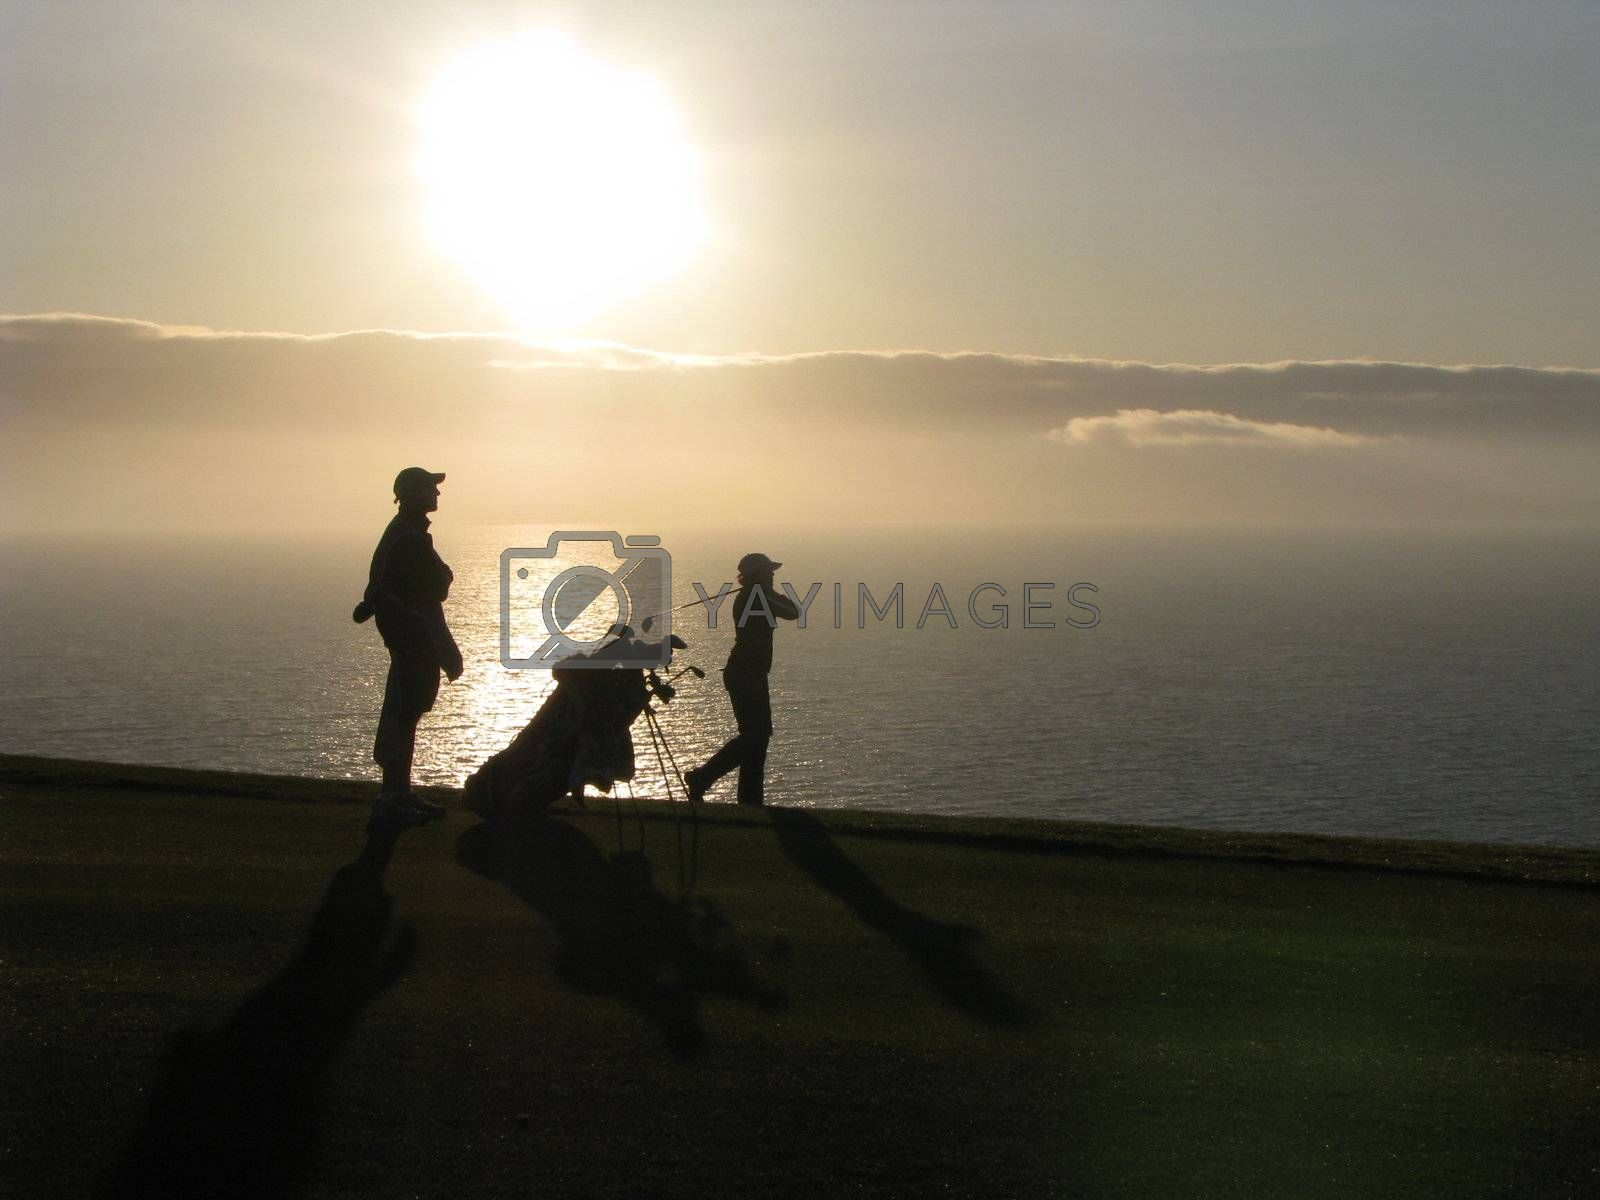 Royalty free image of Golfer and Caddy by ewilliamsdesign